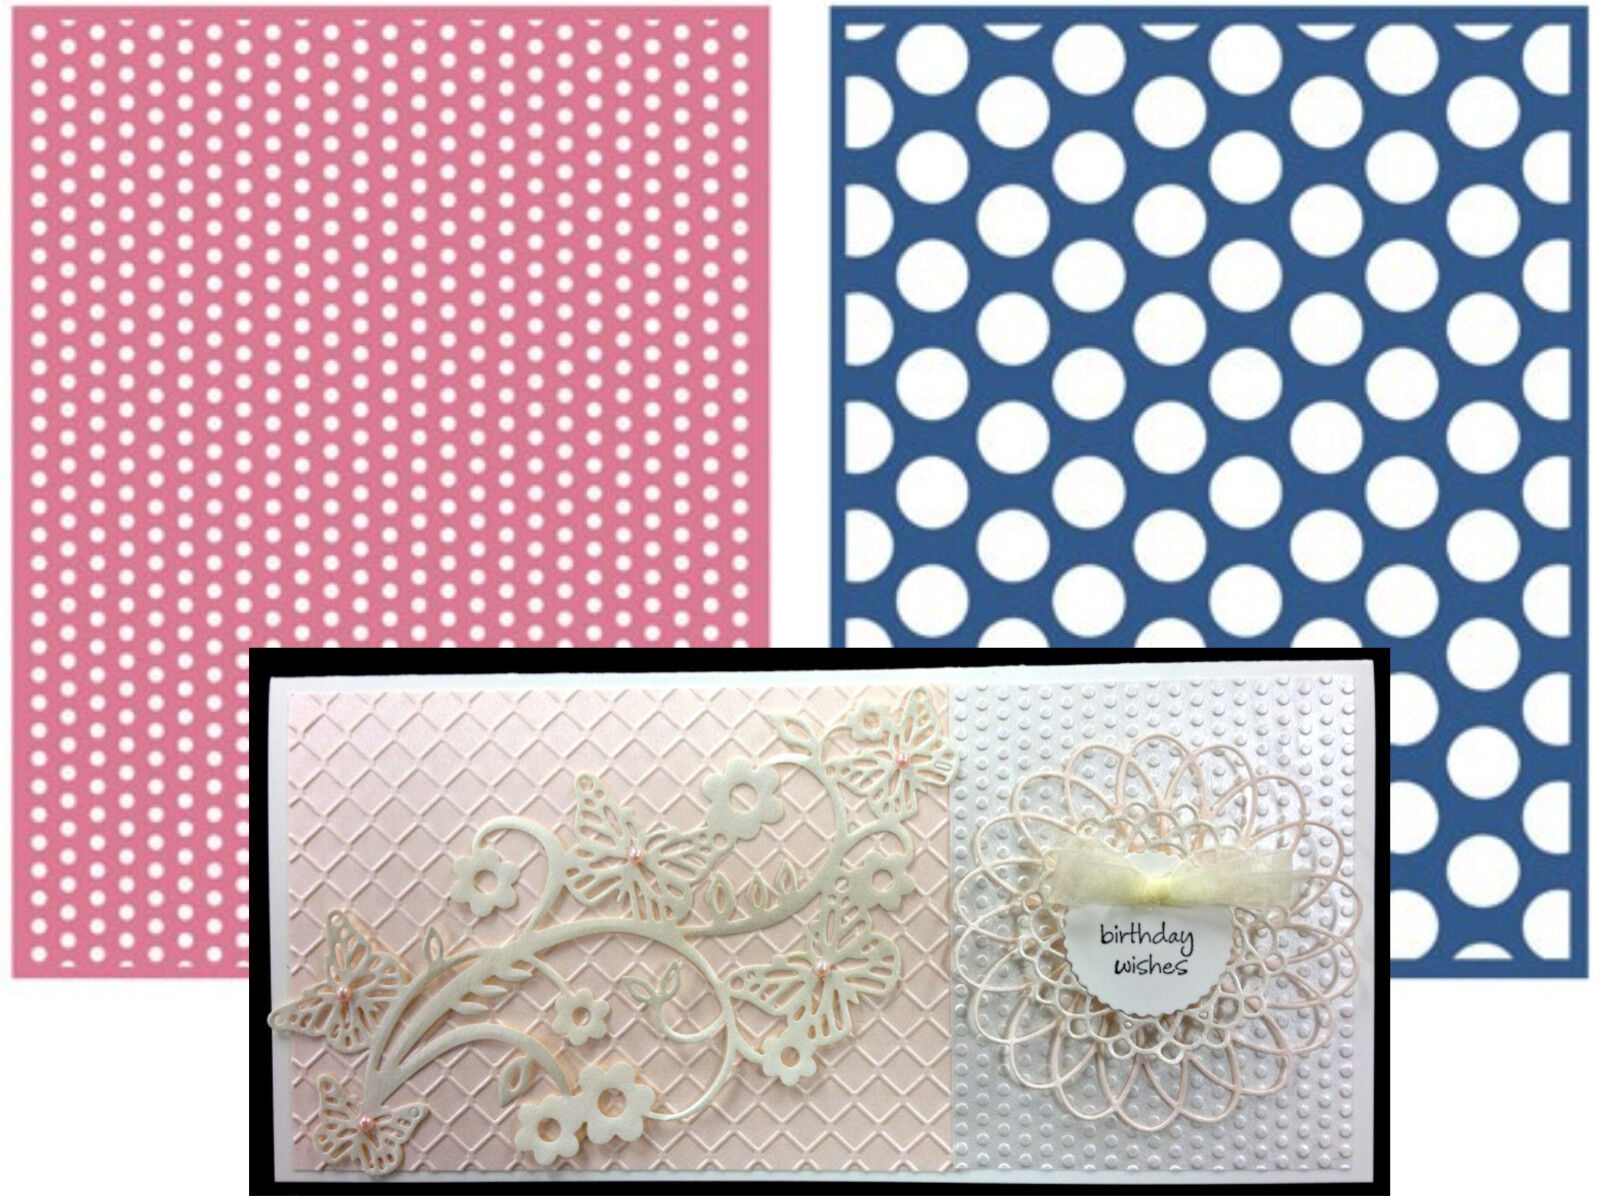 Lifestyle crafts embossing folders - Spotted Lifestyle Crafts Embossing Folders Ef0024 Polka Dot